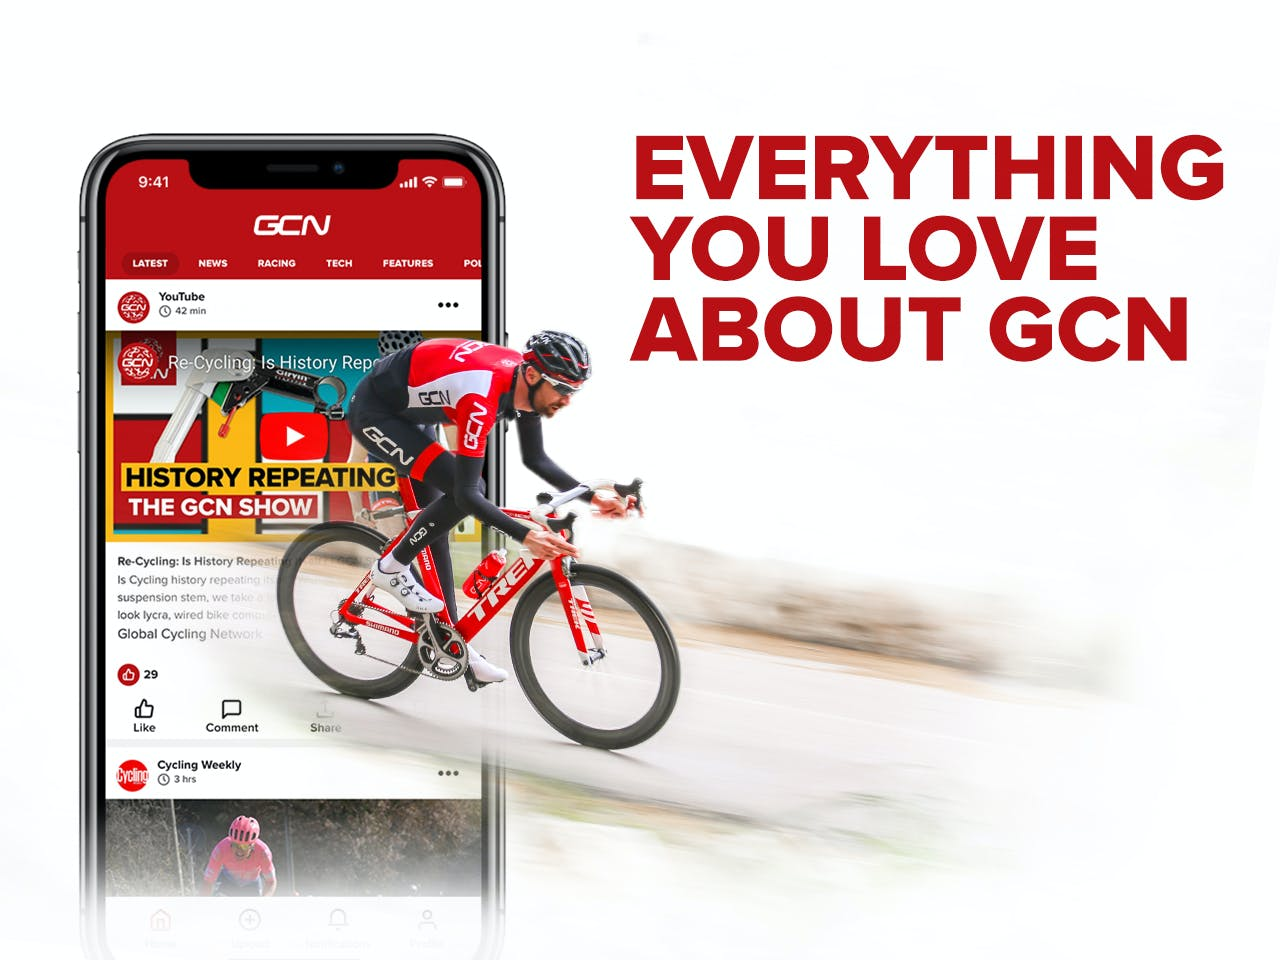 Welcome to the GCN app!